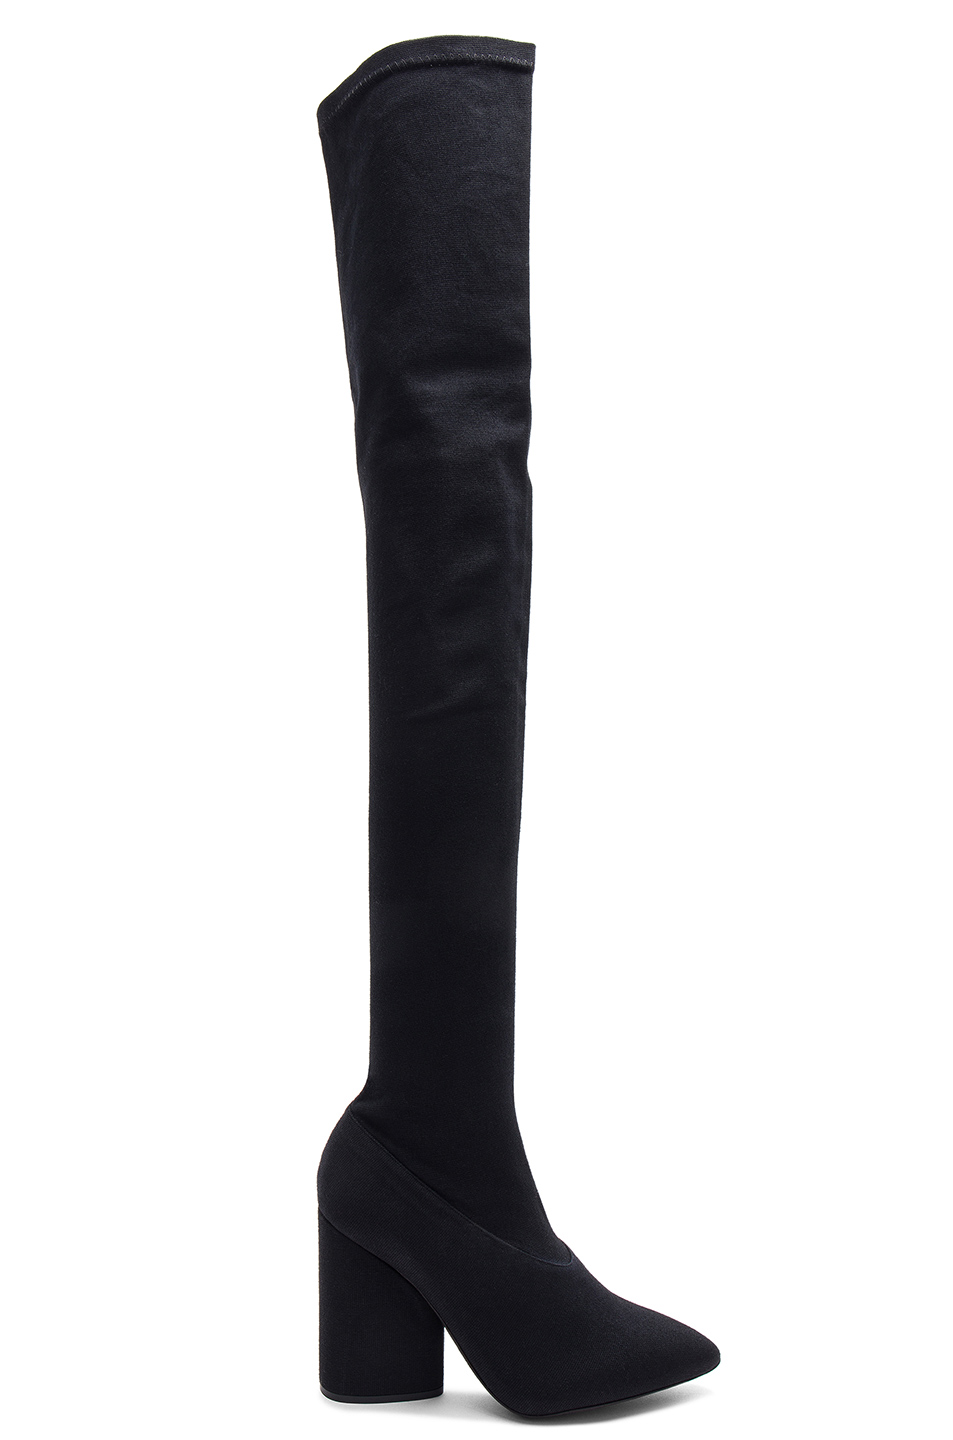 YEEZY Season 4 Stretch Canvas Thigh High Boots in Black